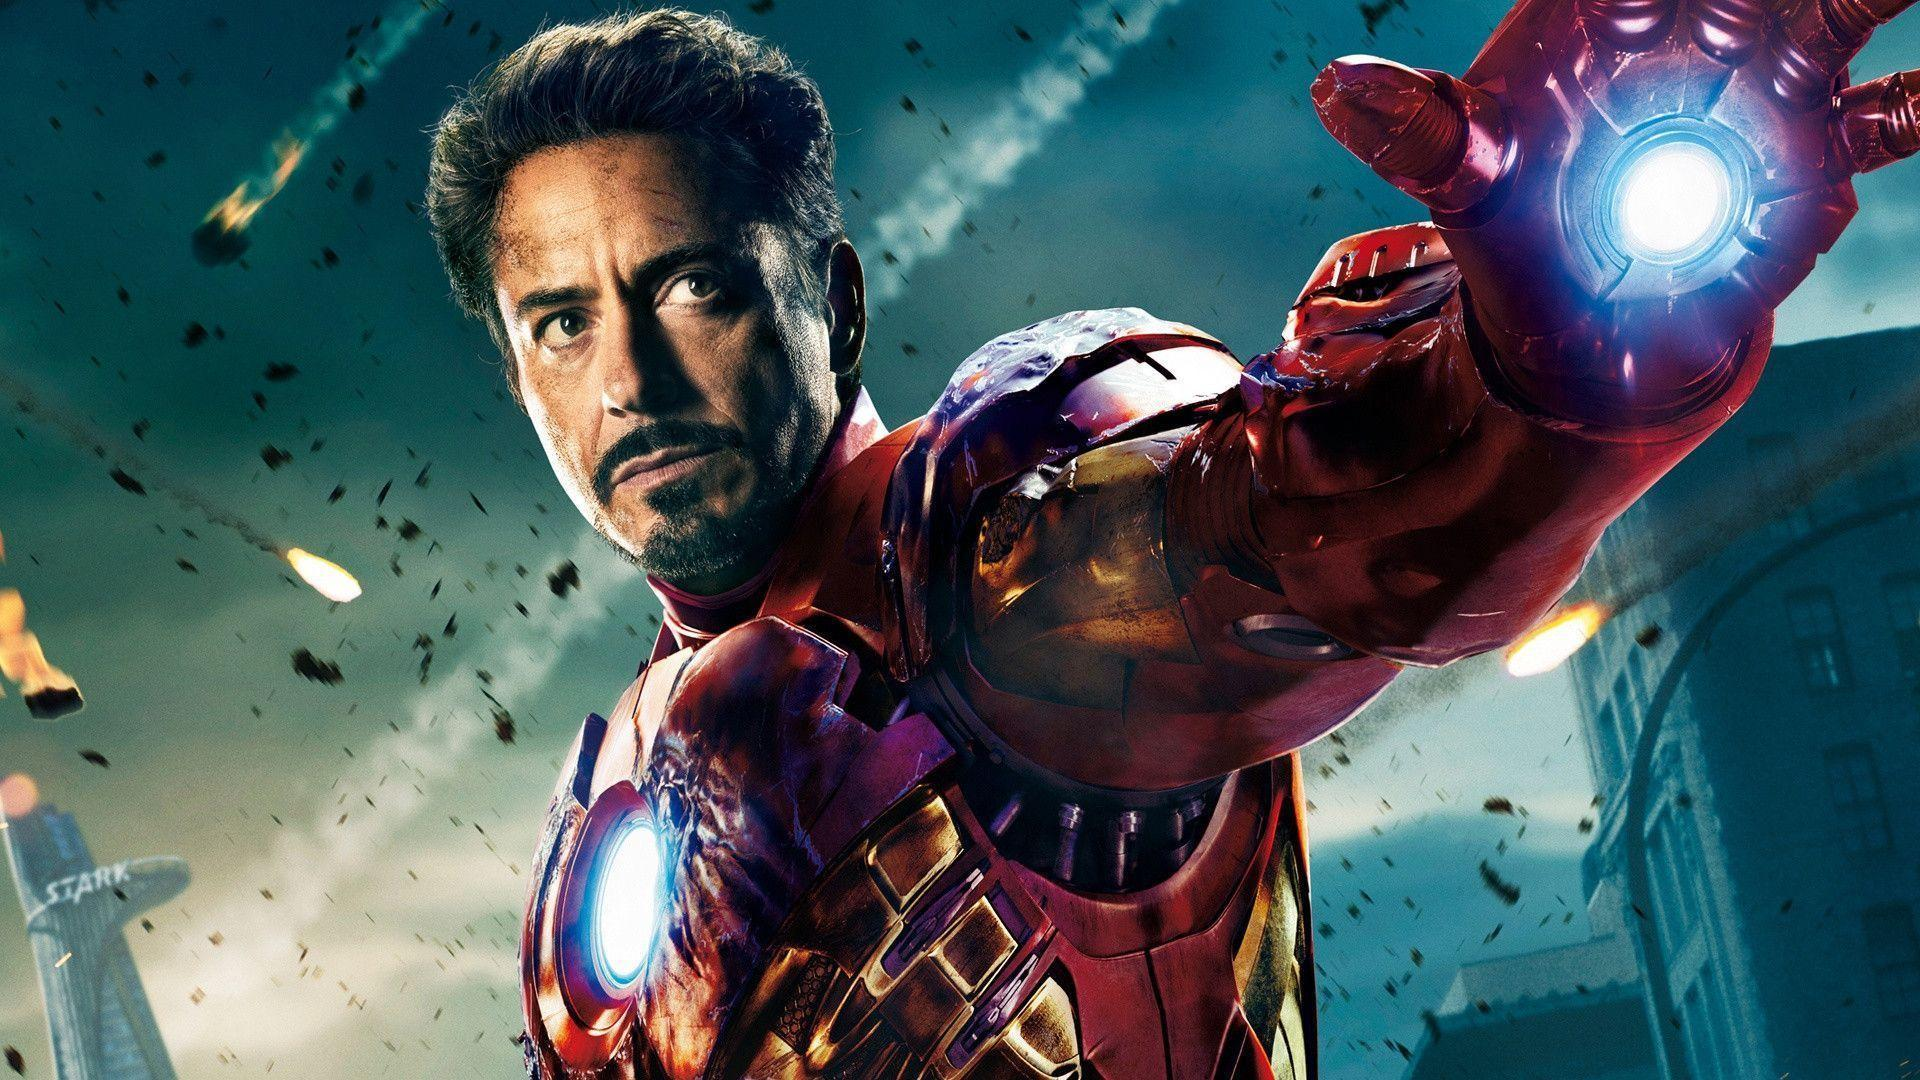 Iron Man in Avengers Movie Wallpapers | HD Wallpapers